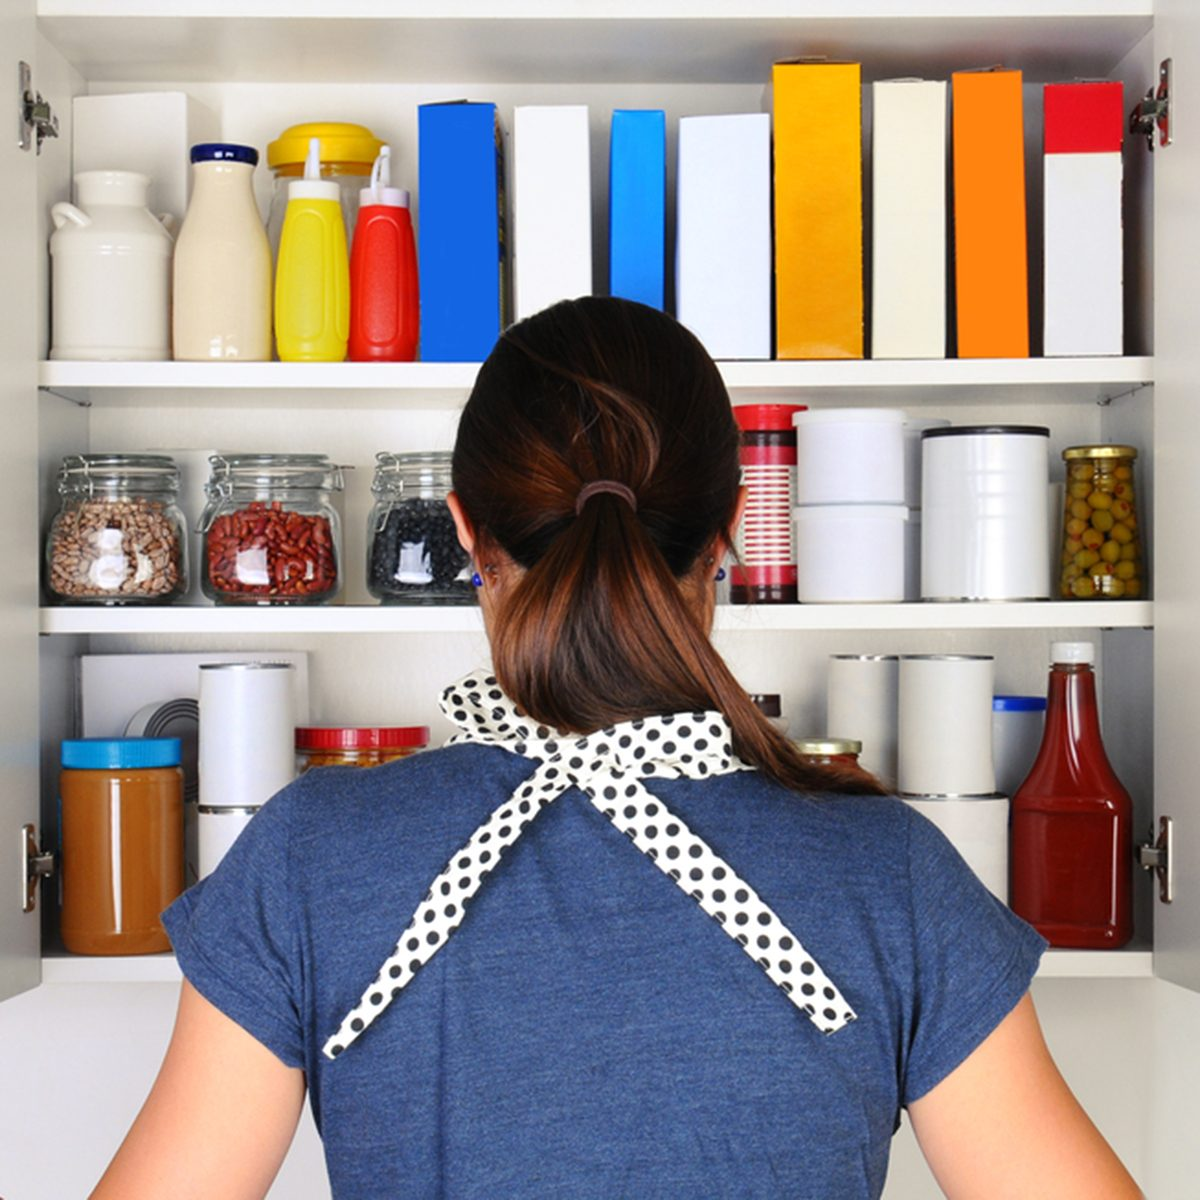 A woman seen from behind opening the doors to a fully stocked pantry.